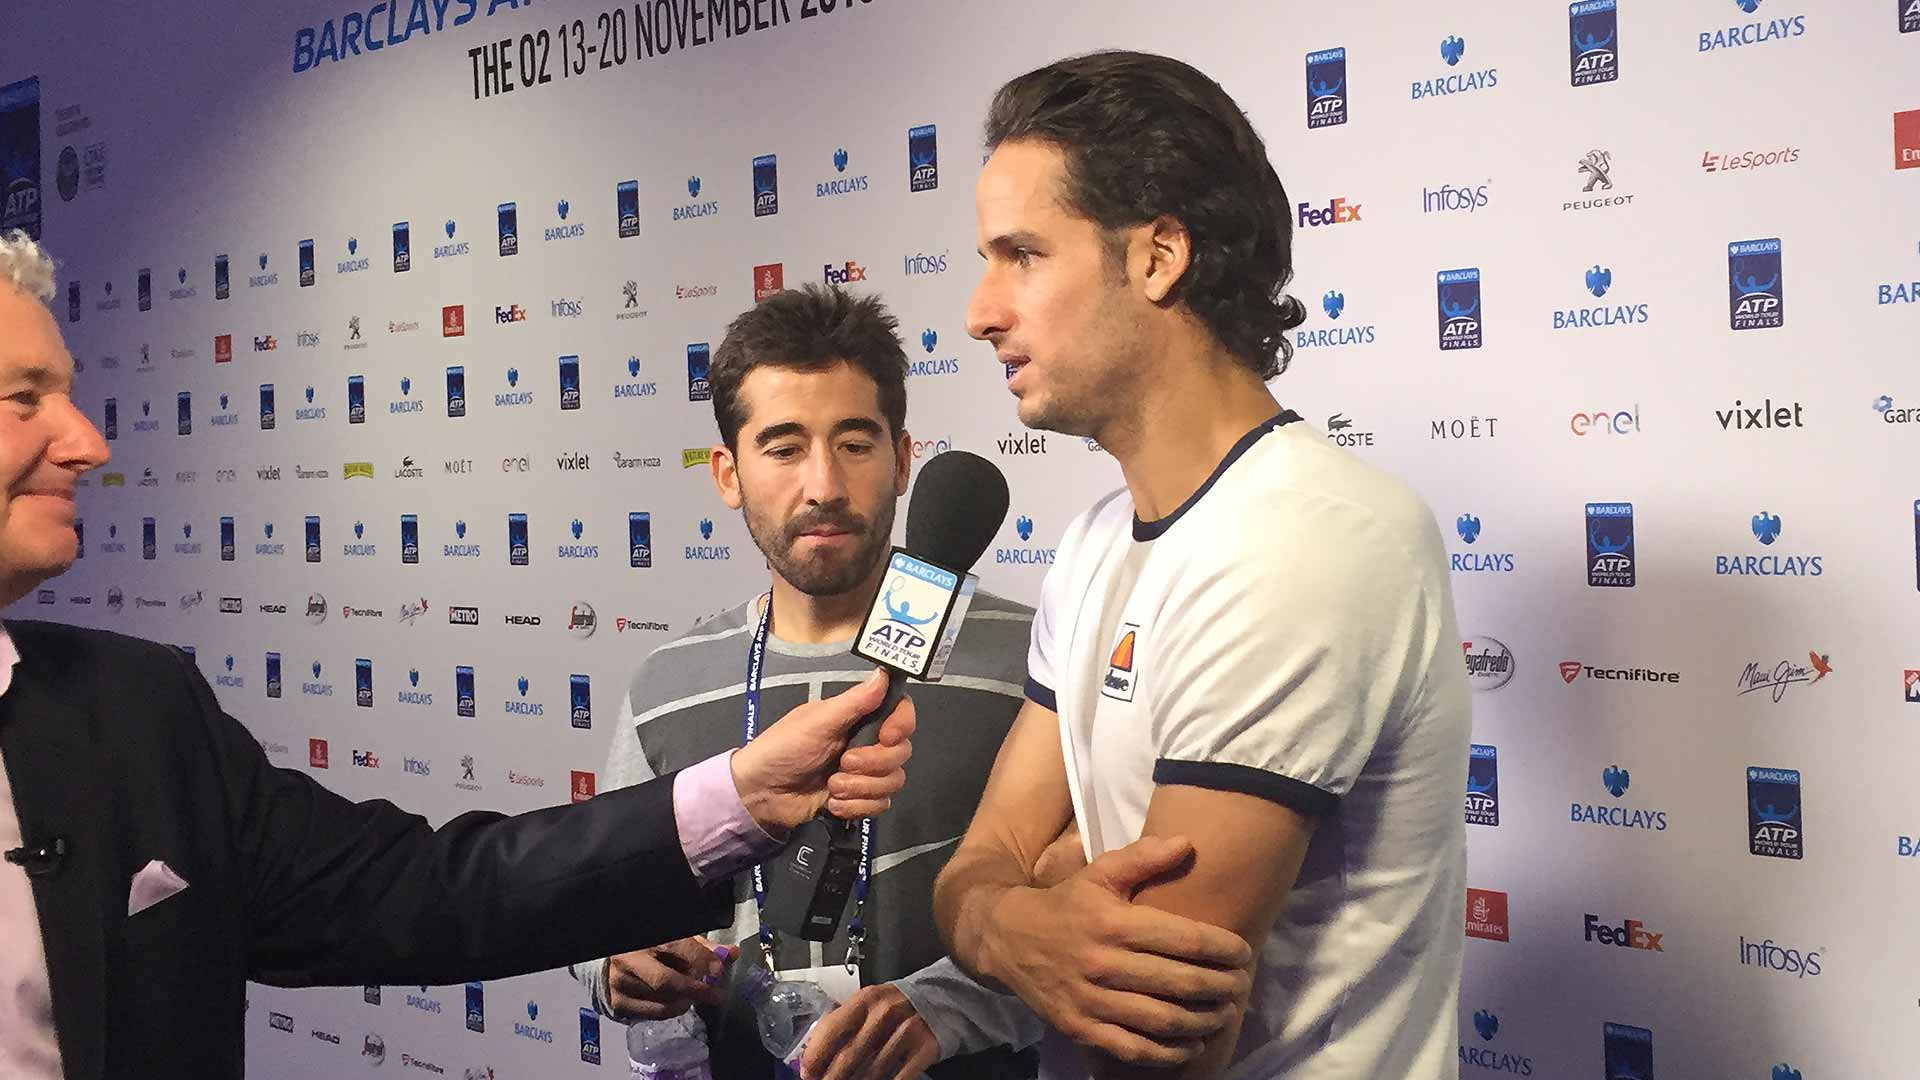 Feliciano Lopez is thriving on the atmosphere at the Barclays ATP World Tour Finals.